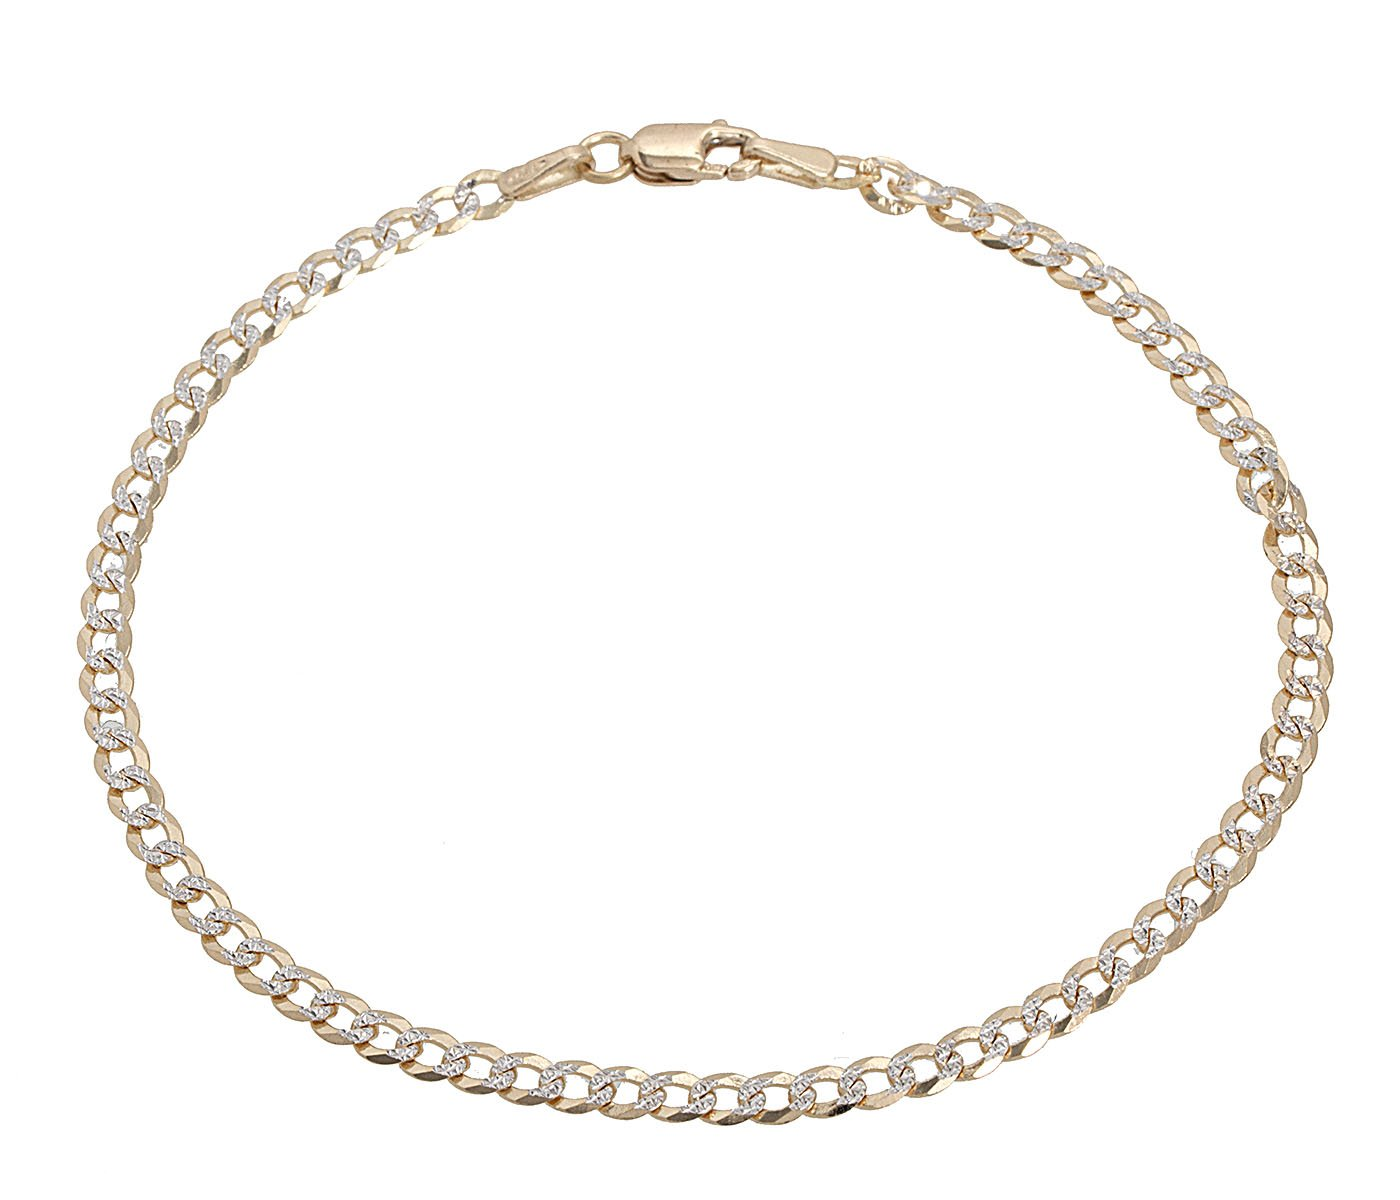 18K Solid Yellow Gold with White Pave Diamond Cut 3MM Cuban Chain Bracelet- 8 inch